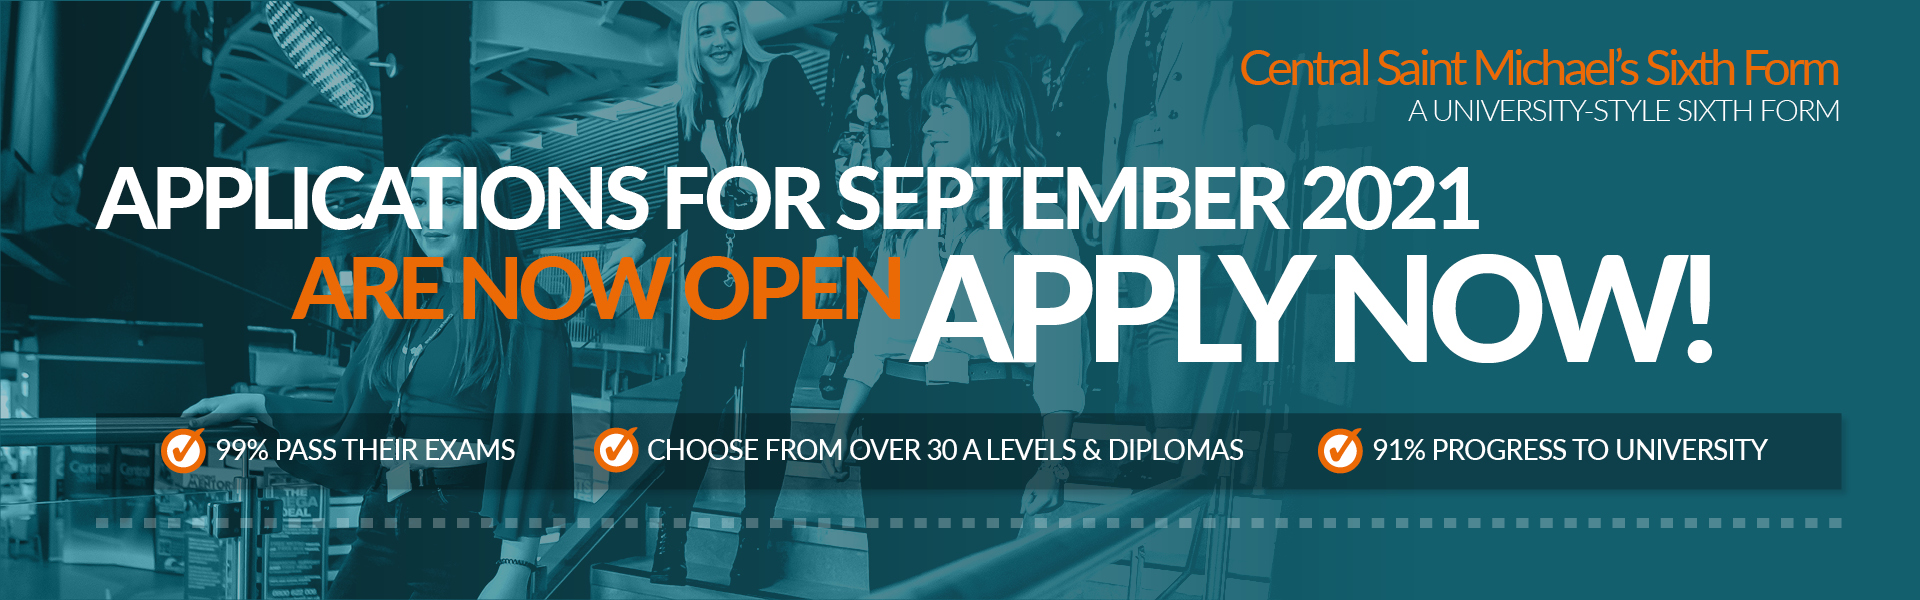 Applications for September 2021 are now open, click here to apply now